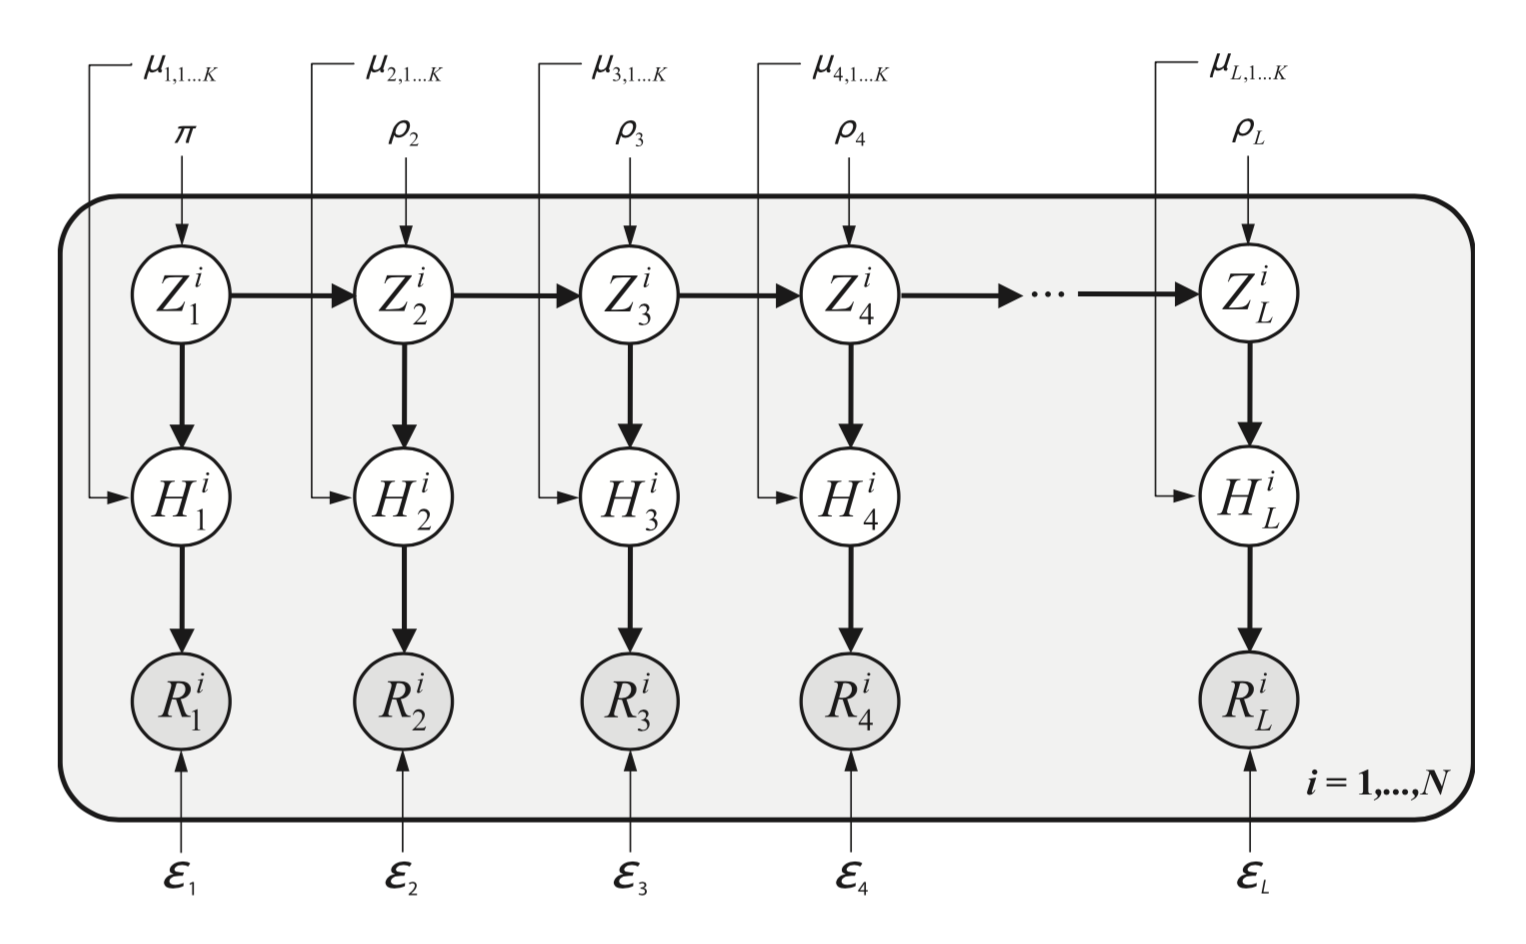 Graphical representation of a generative model